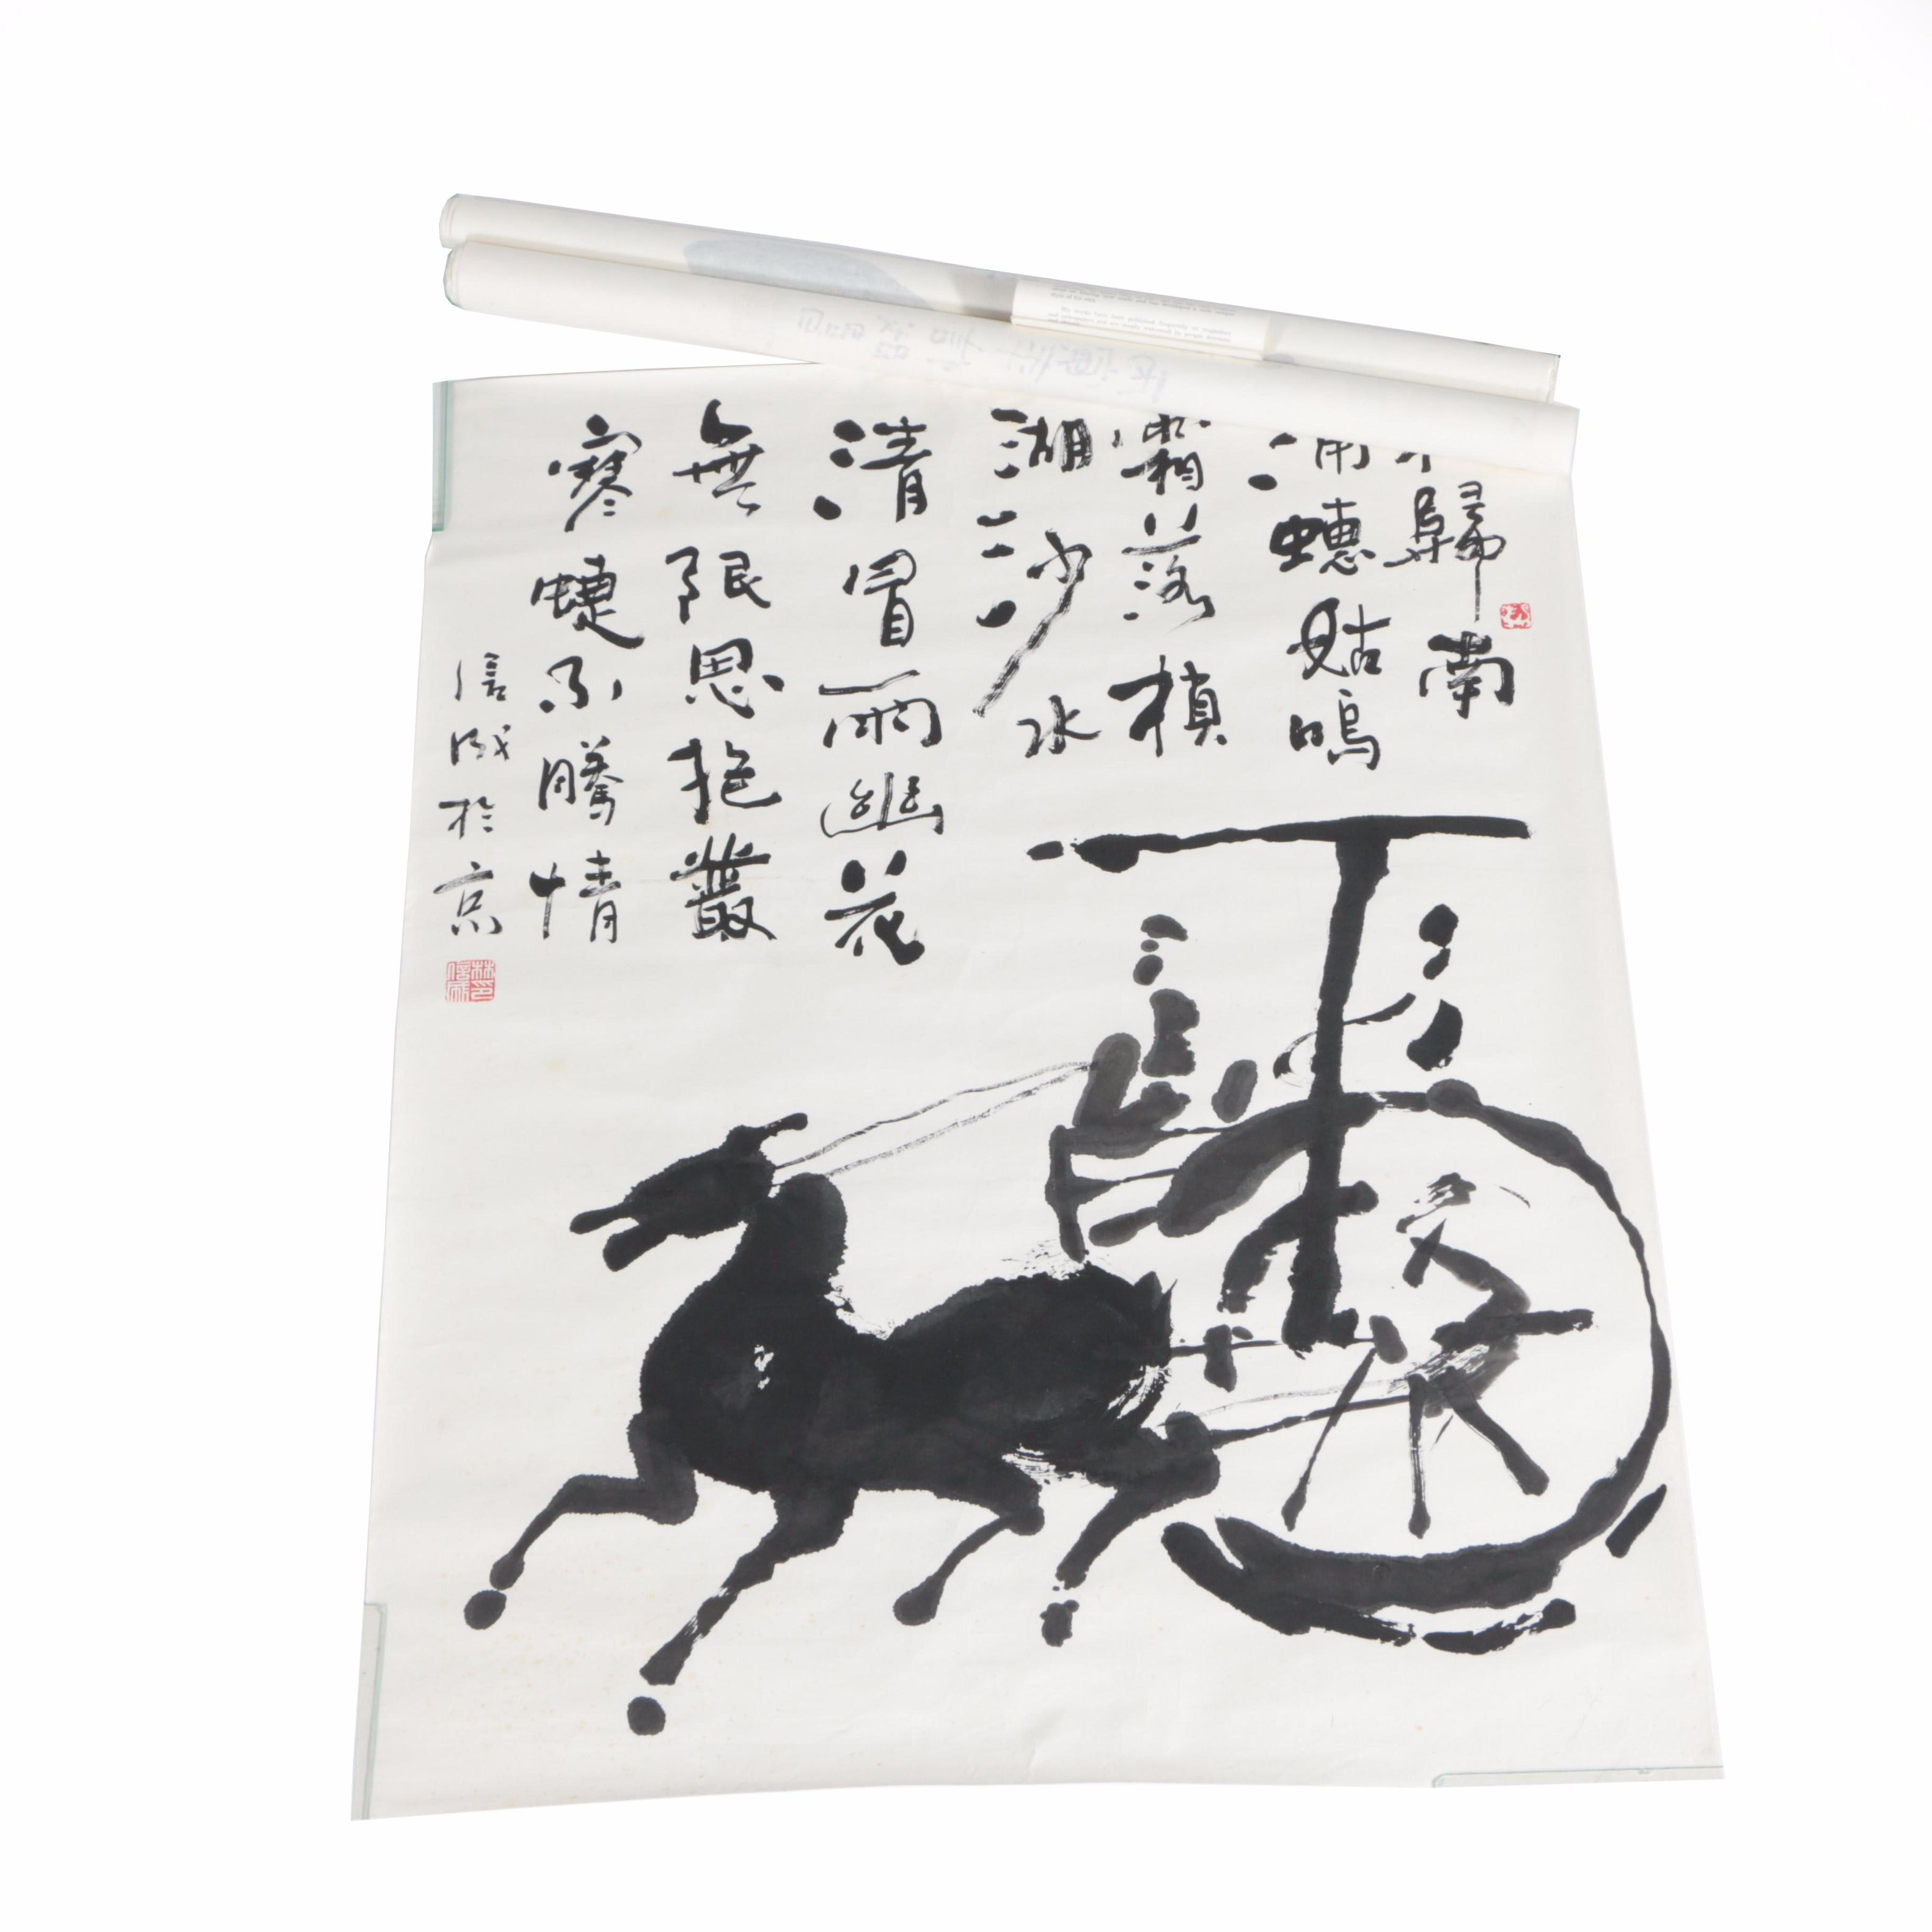 Collection of Attributed Lin Xincheng Ink Calligraphy